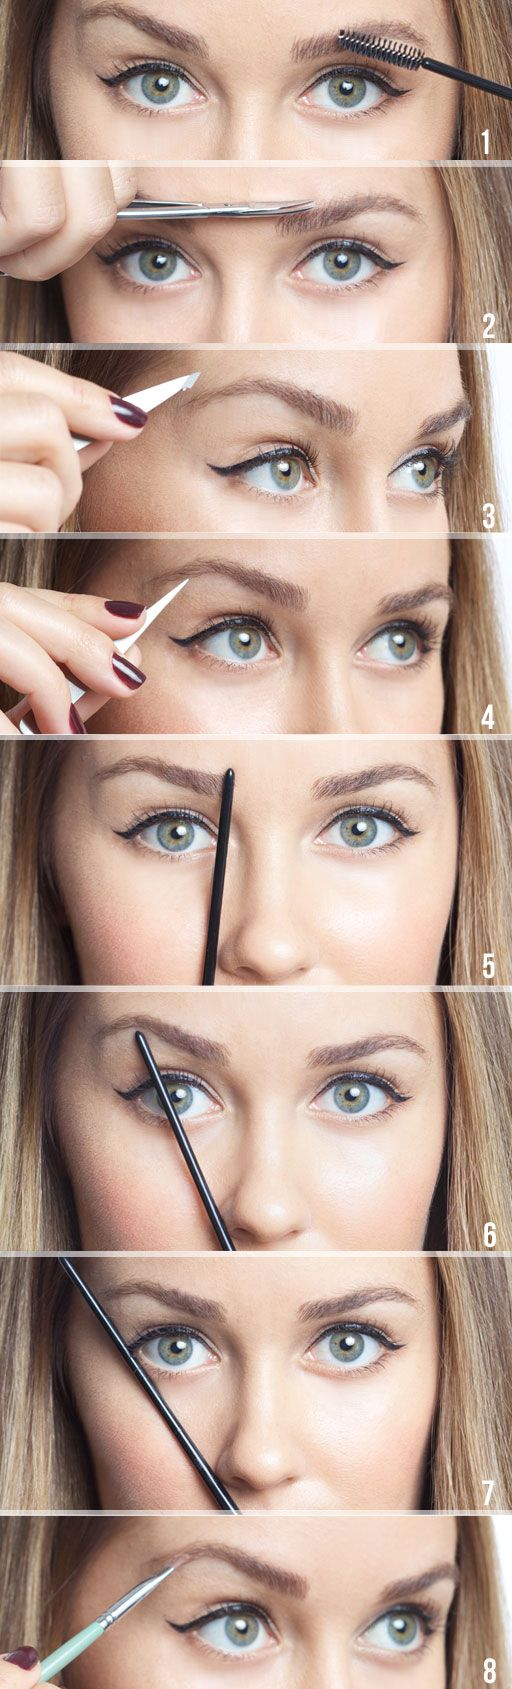 Eye Brows: Beauty Tips, Make Up, Eye Brows, Style, Makeup, Eyebrow Tutorial, Perfect Eyebrows, Beautytips